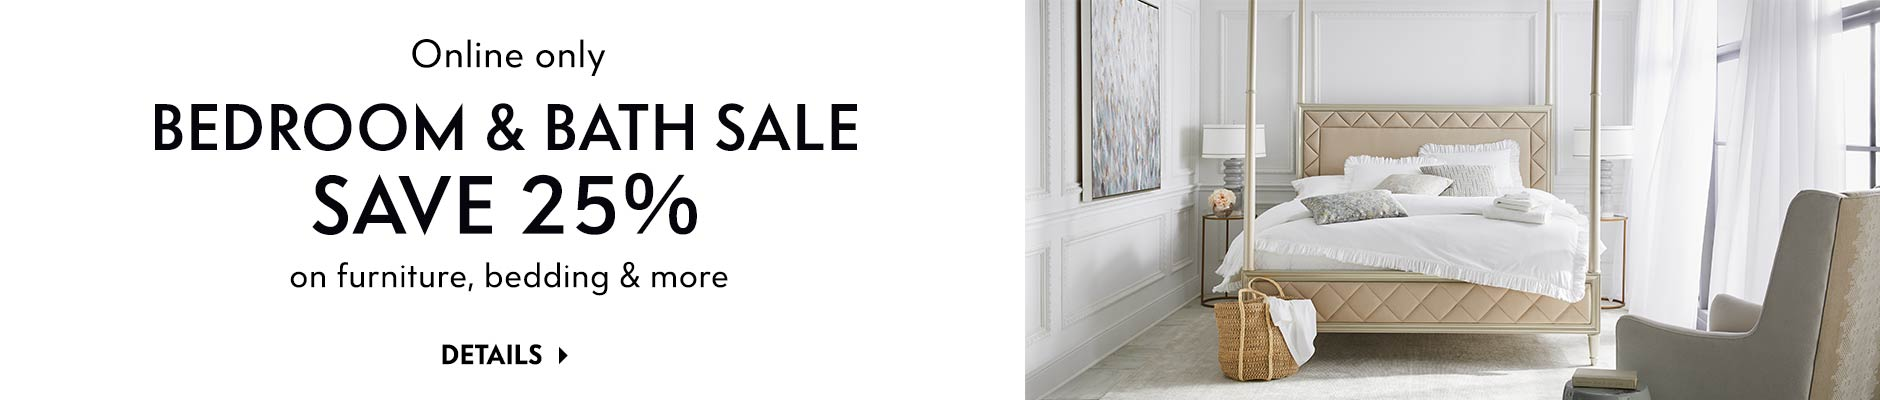 Online only: Bedroom & Bath Sale - Save 25% on furniture, bedding & more